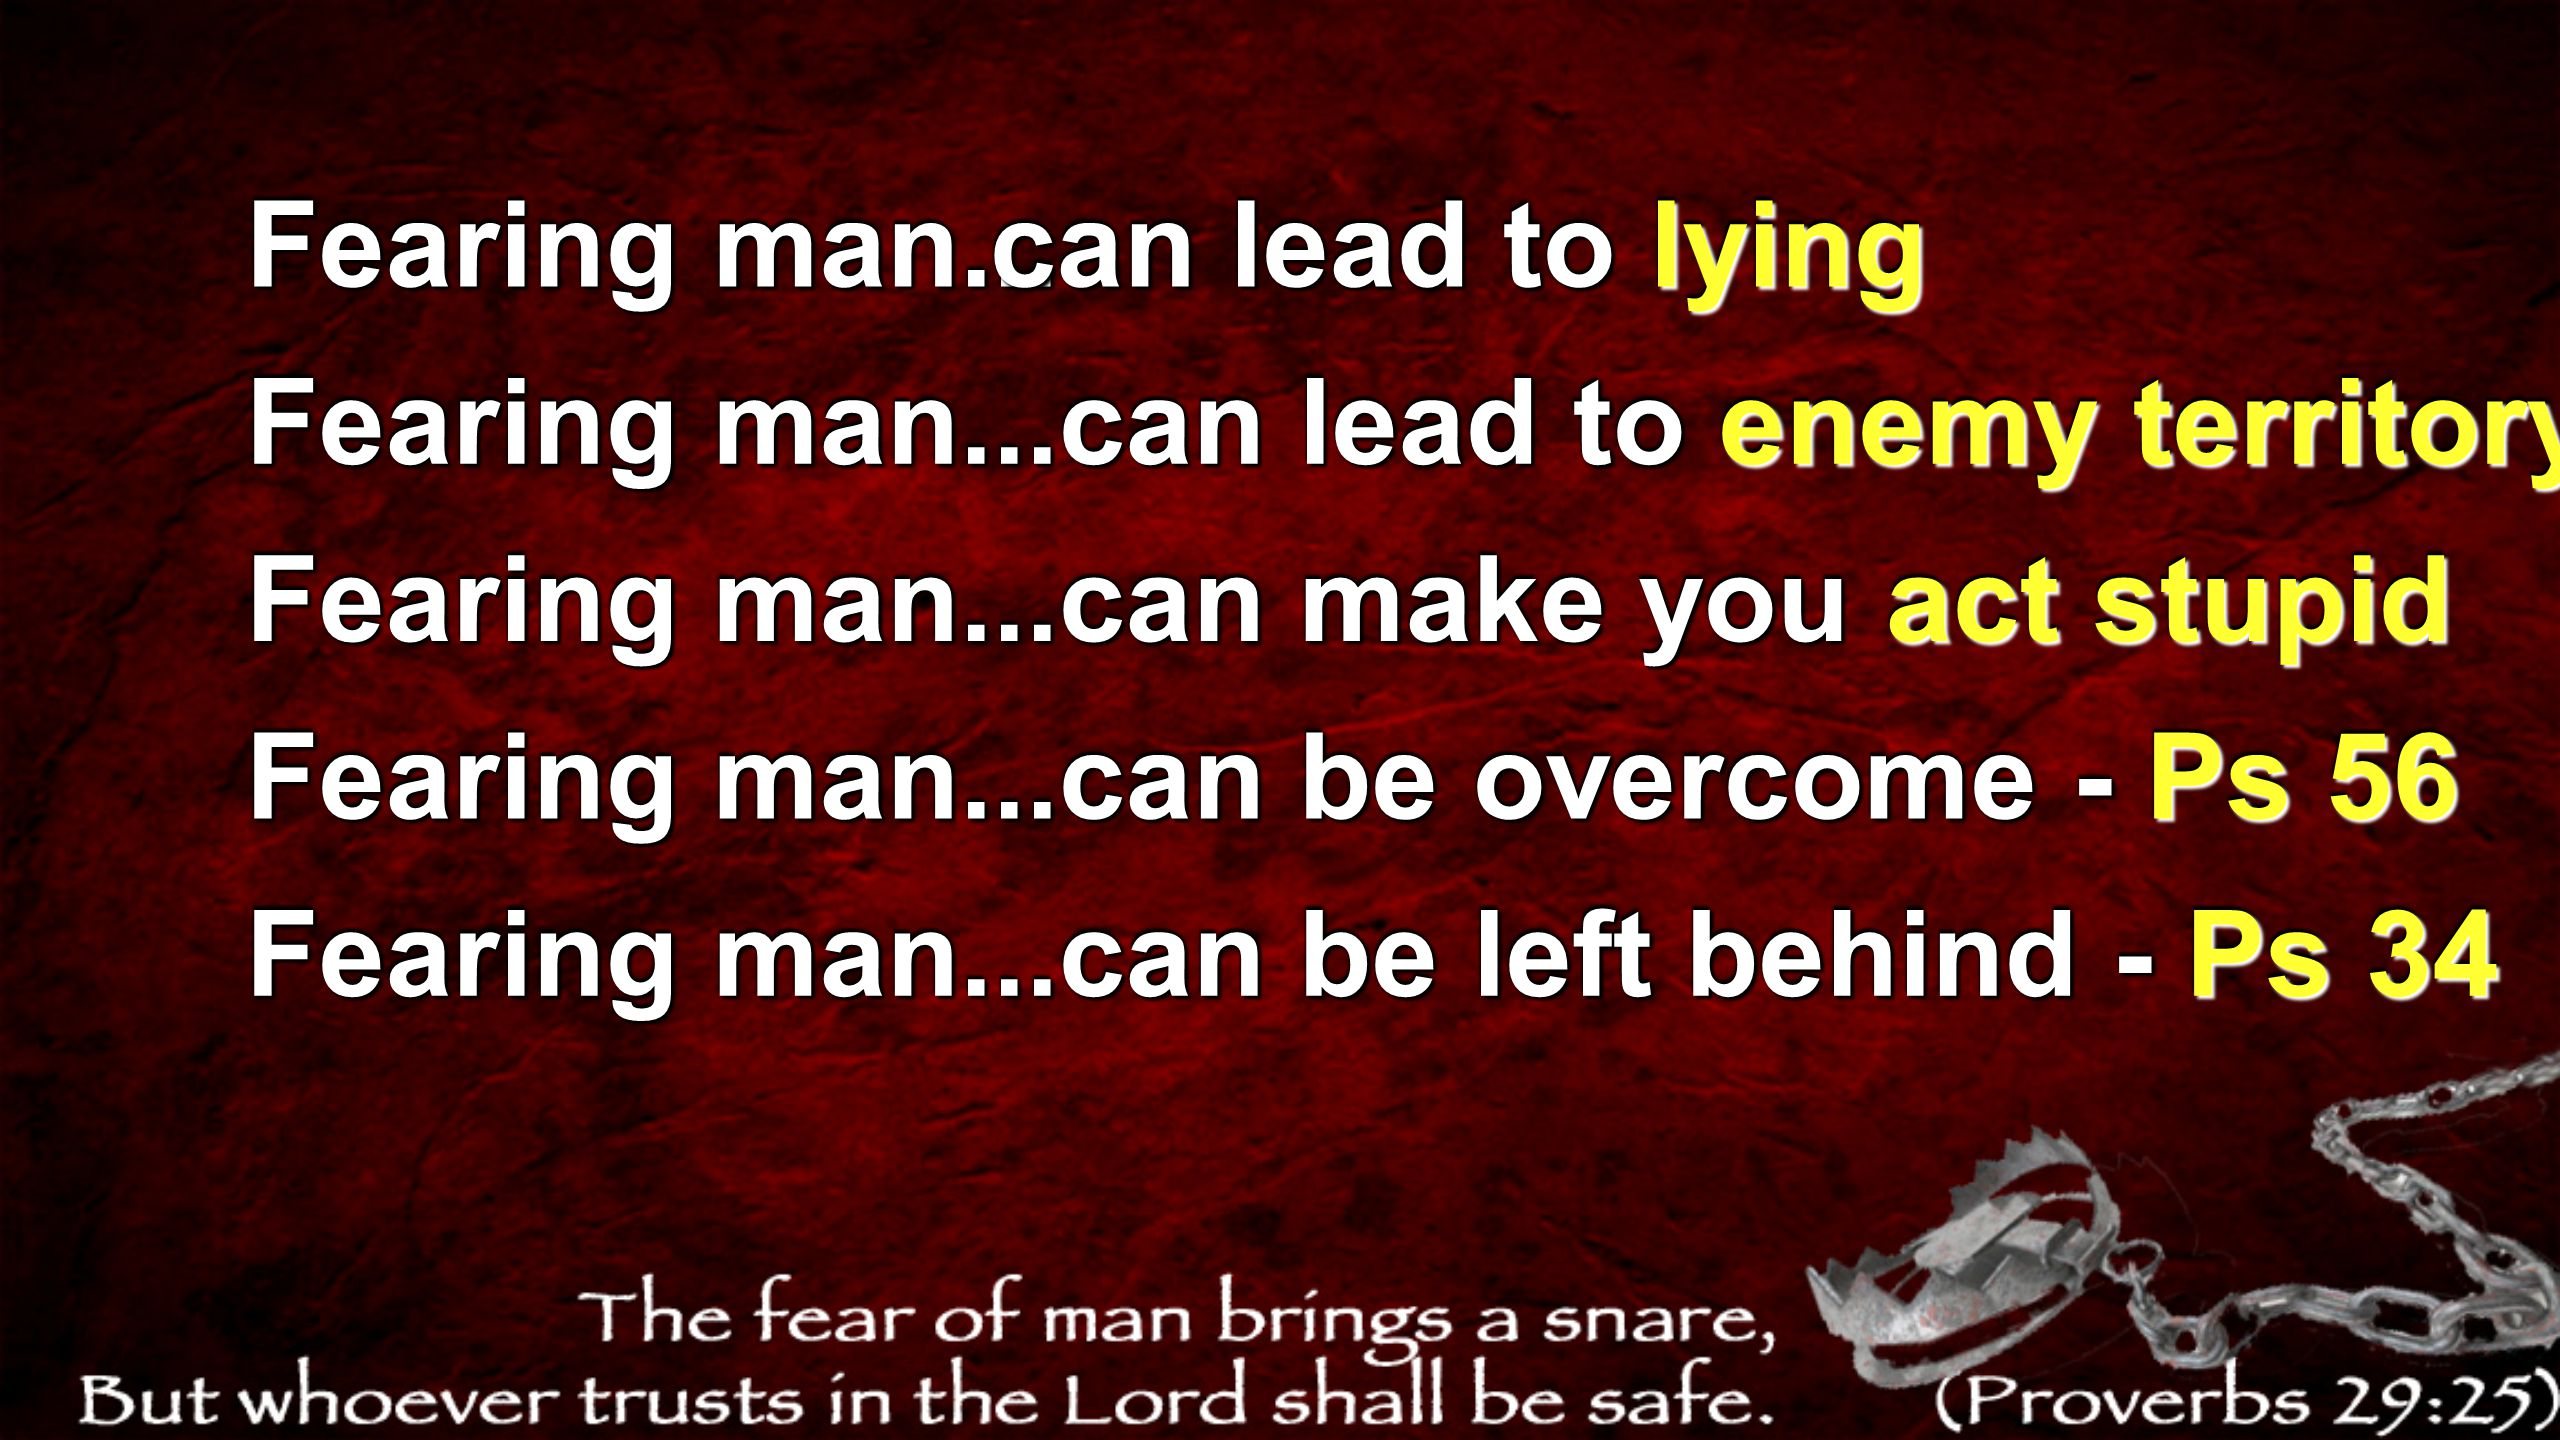 Fearing man... can lead to lying. Fearing man...can lead to enemy territory. Fearing man...can make you act stupid.